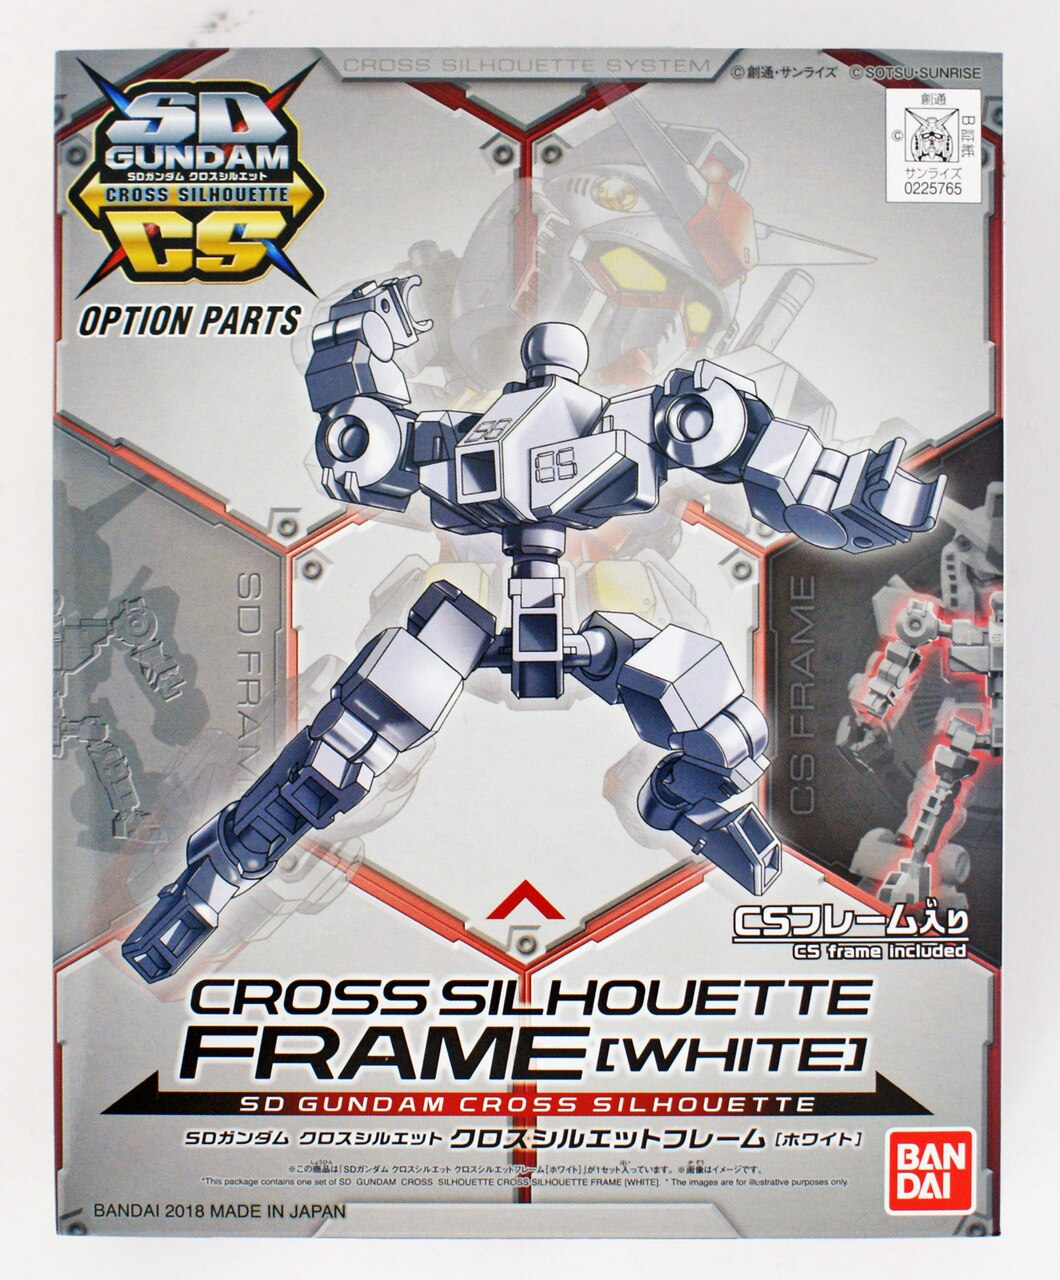 Sd Gundam Cross Silhouette Frame White Box Front.Jpg